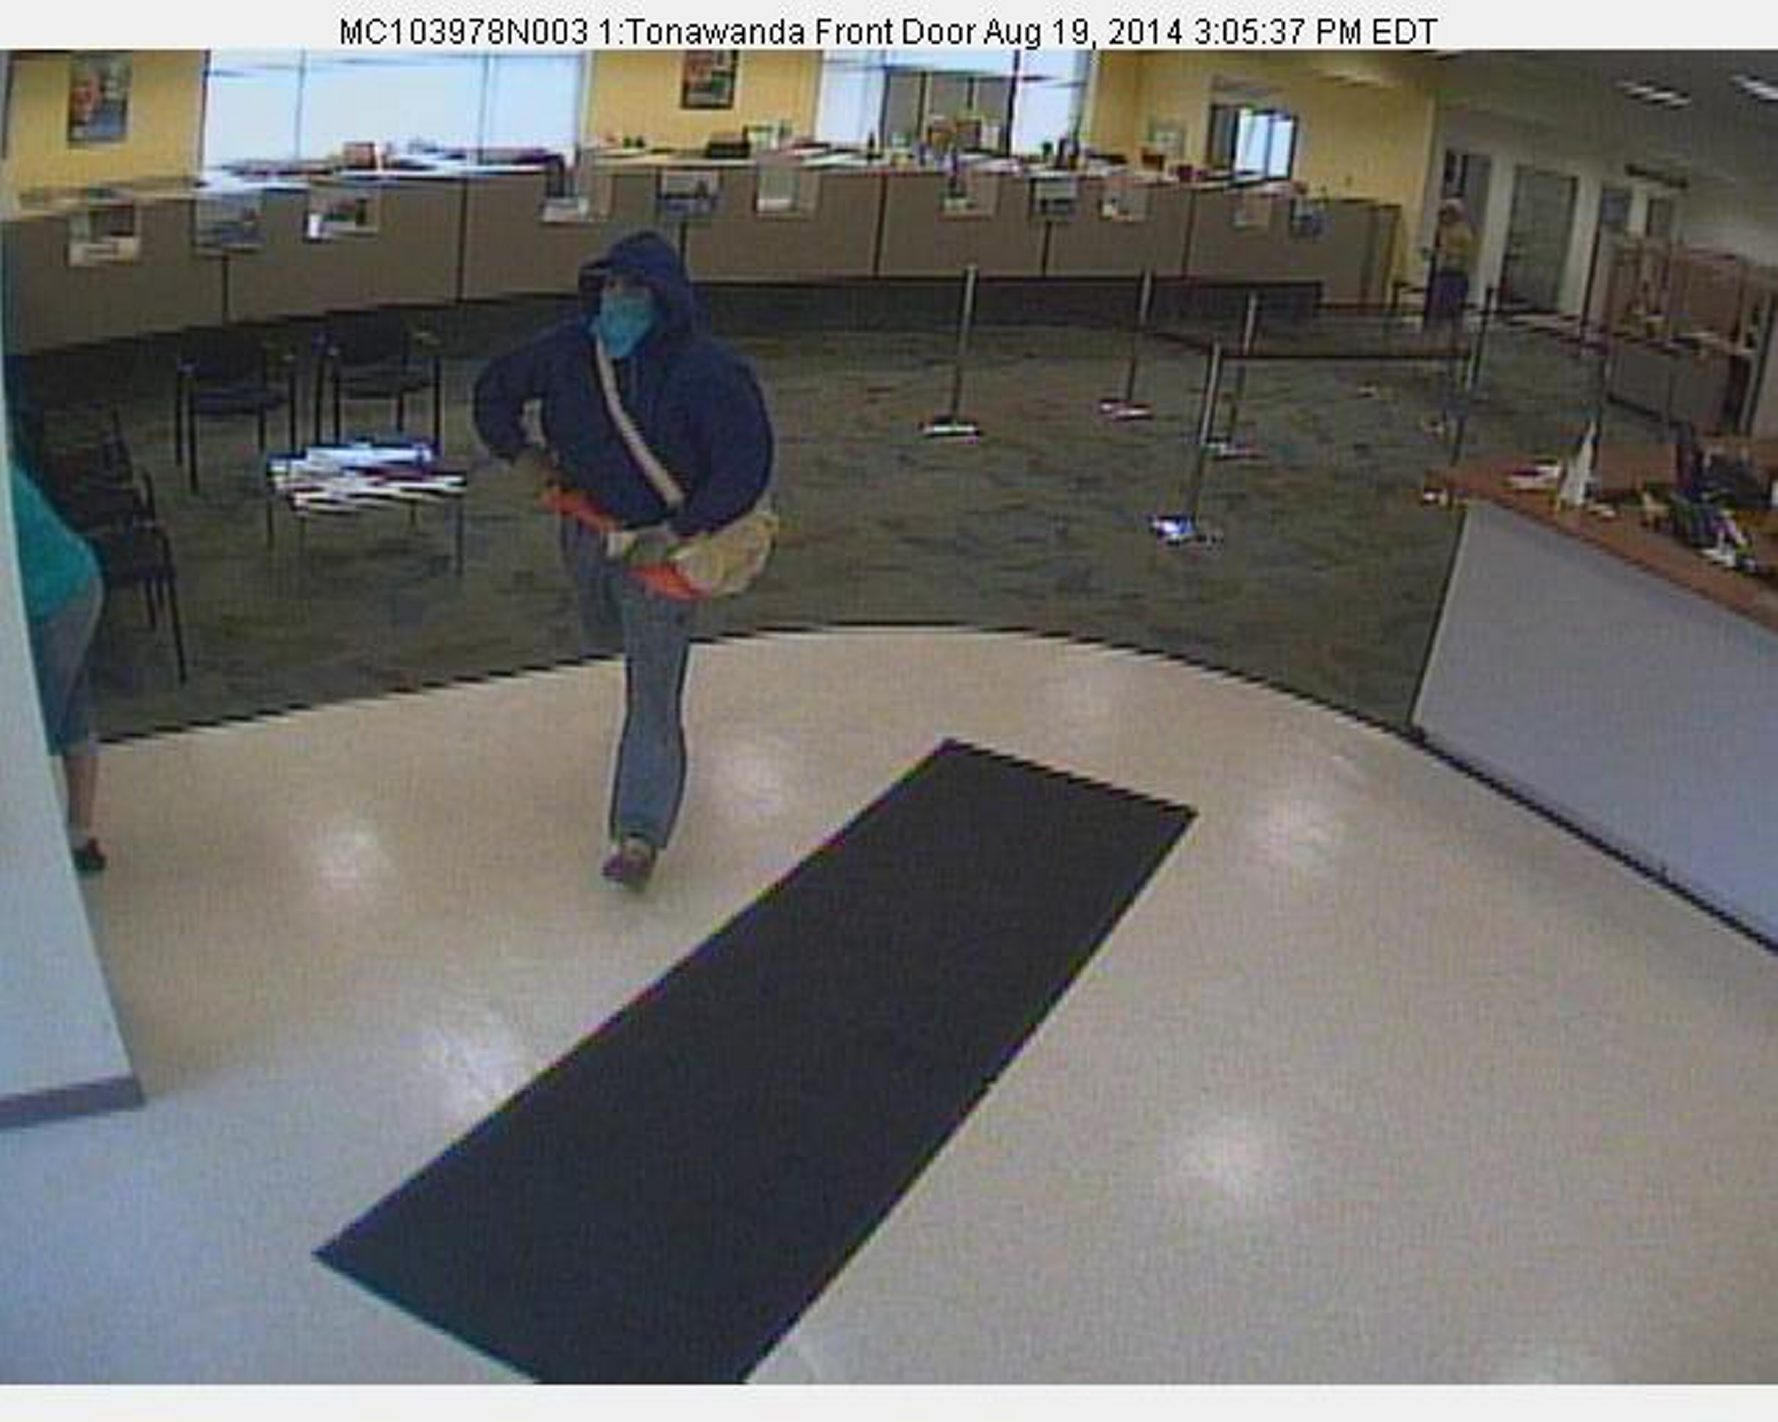 Surveillance photo of suspect in Tuesday's M&T bank robbery in Tonawanda.